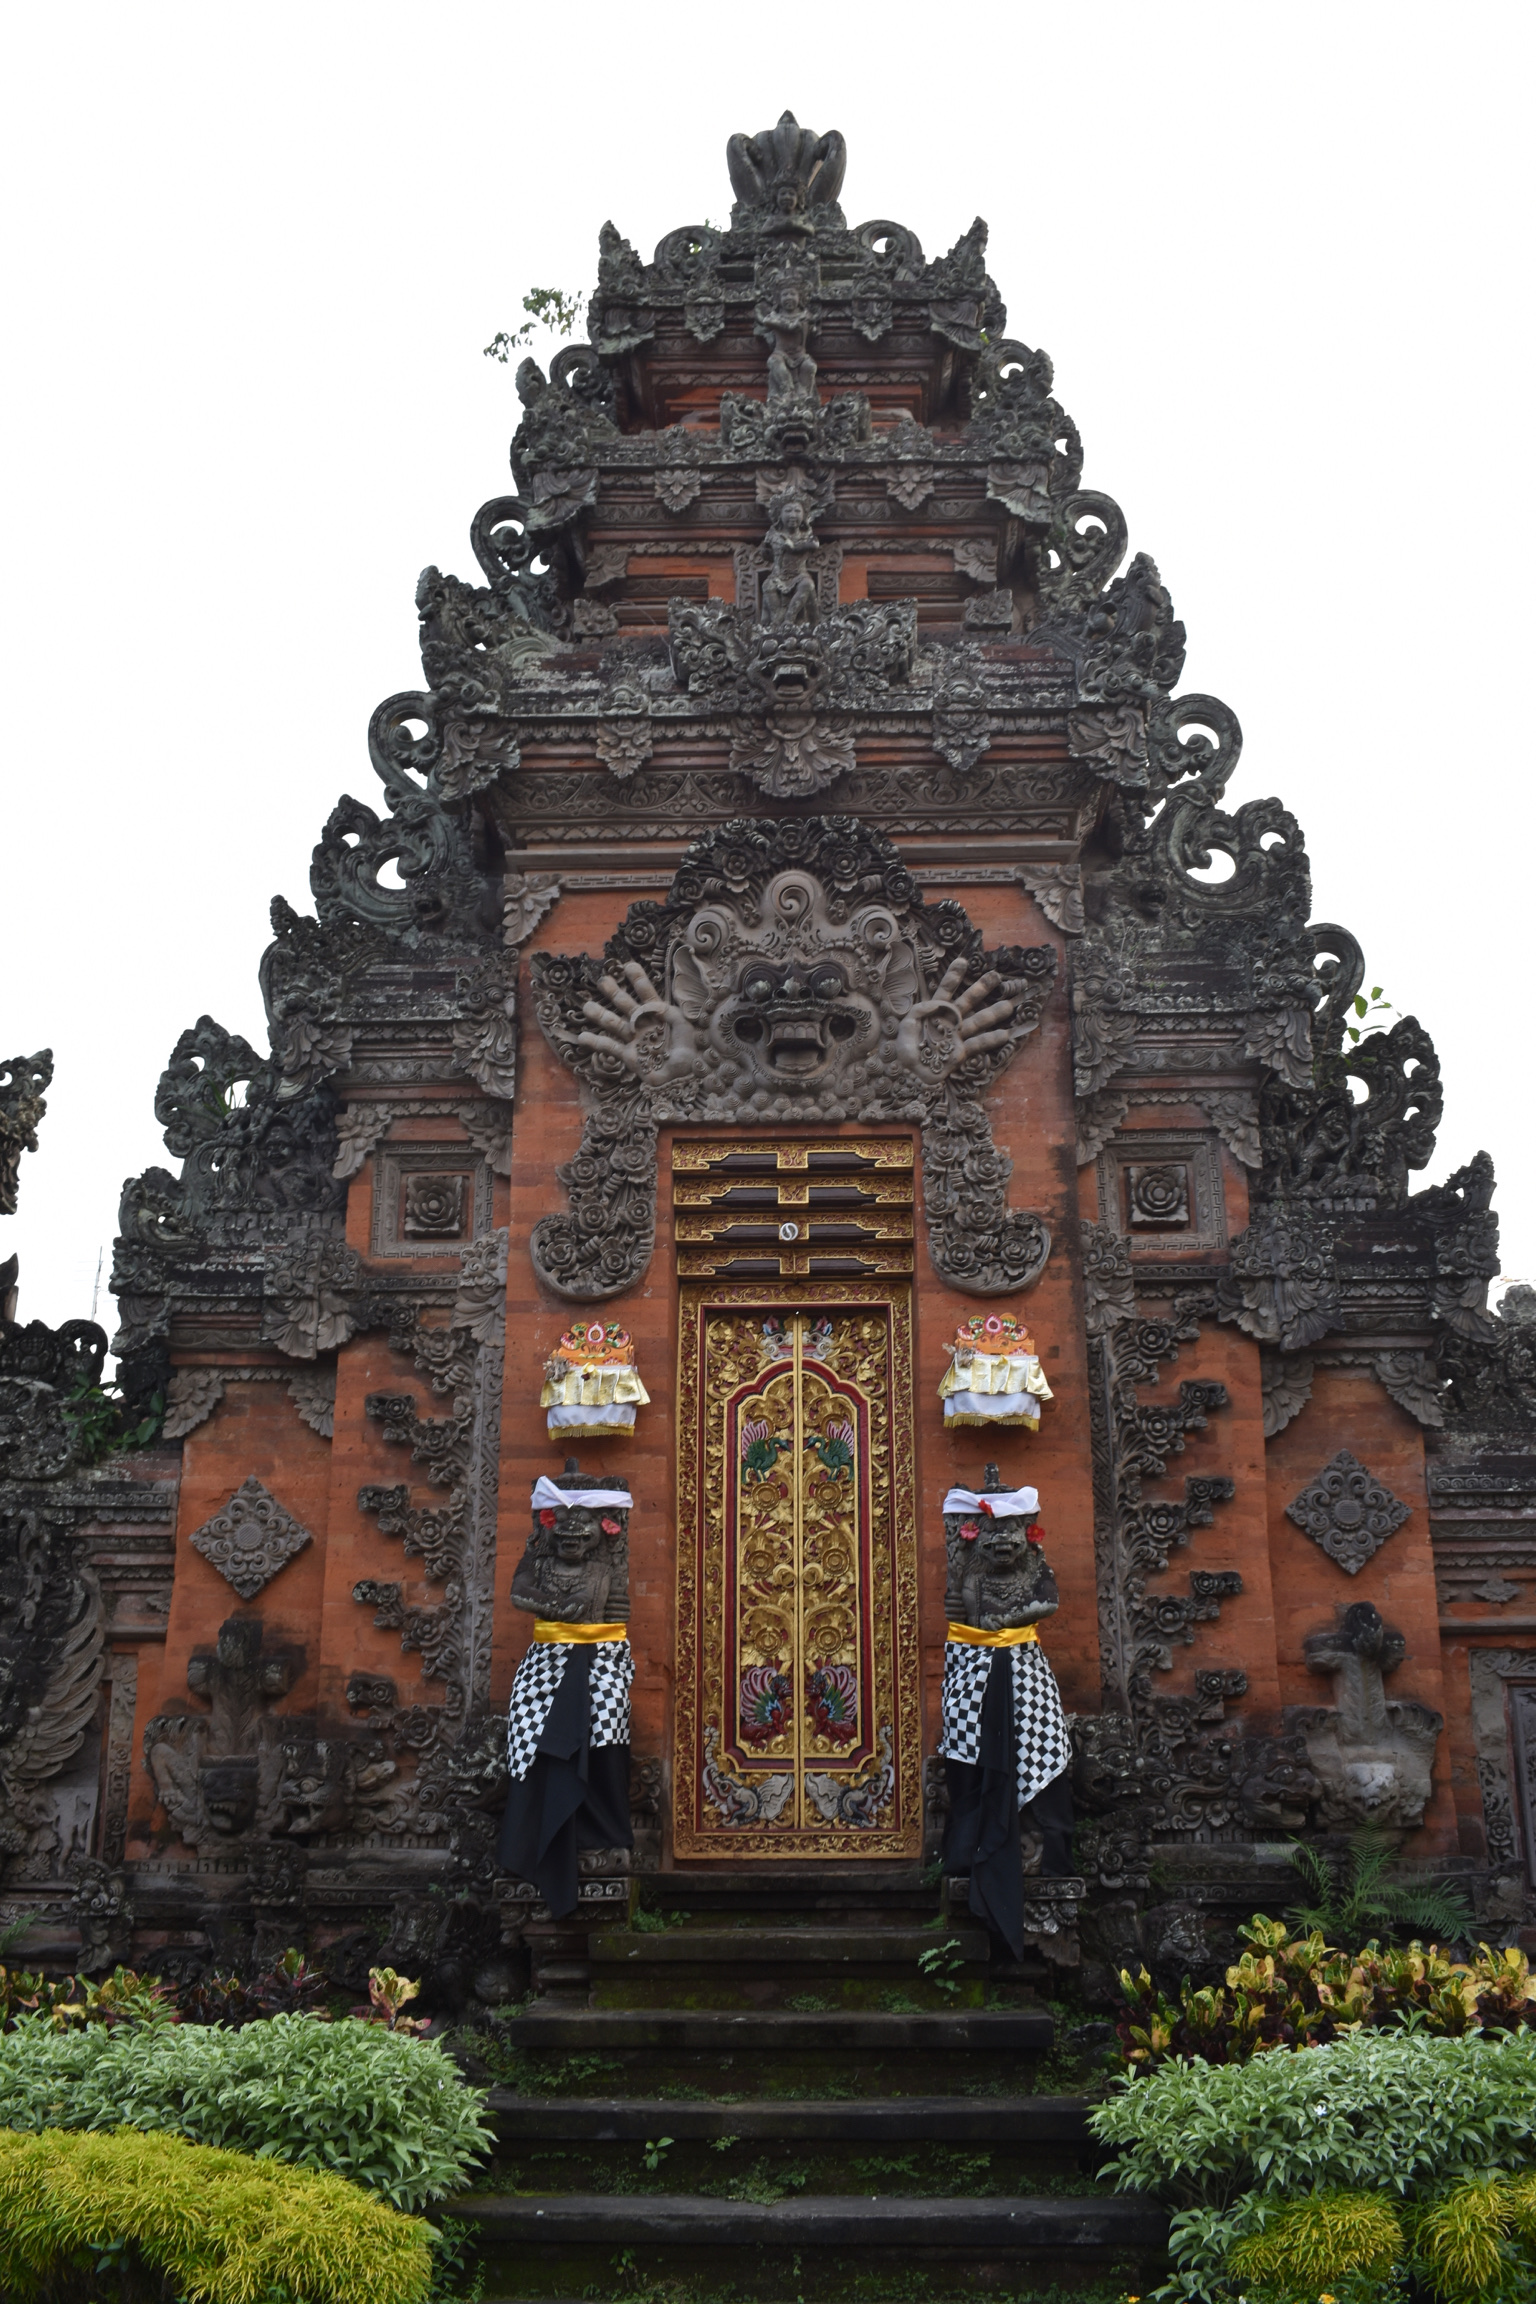 One of the Bali's many shrines